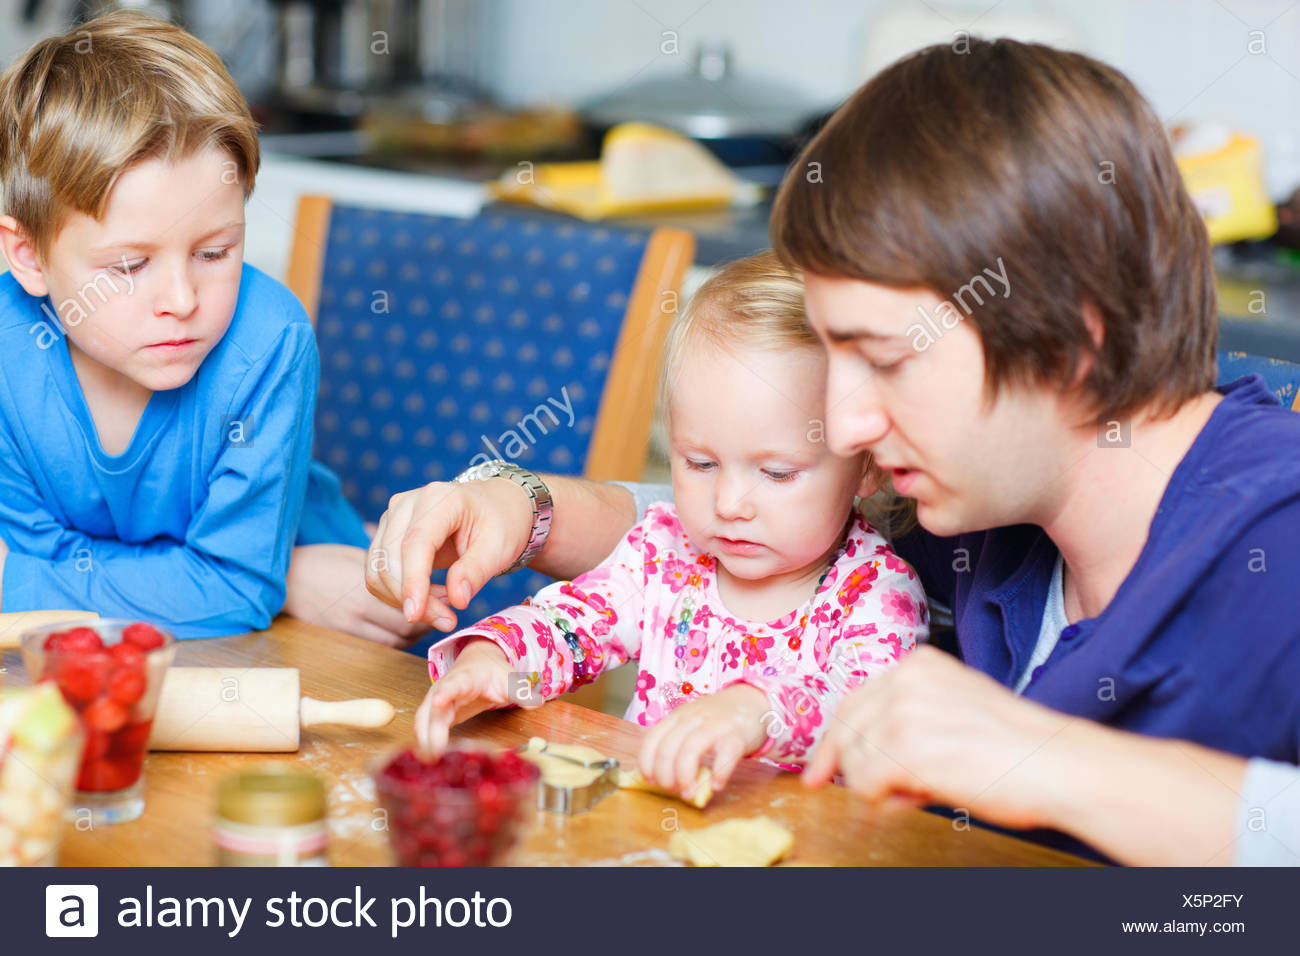 father and his two little children baking biscuits - Stock Image